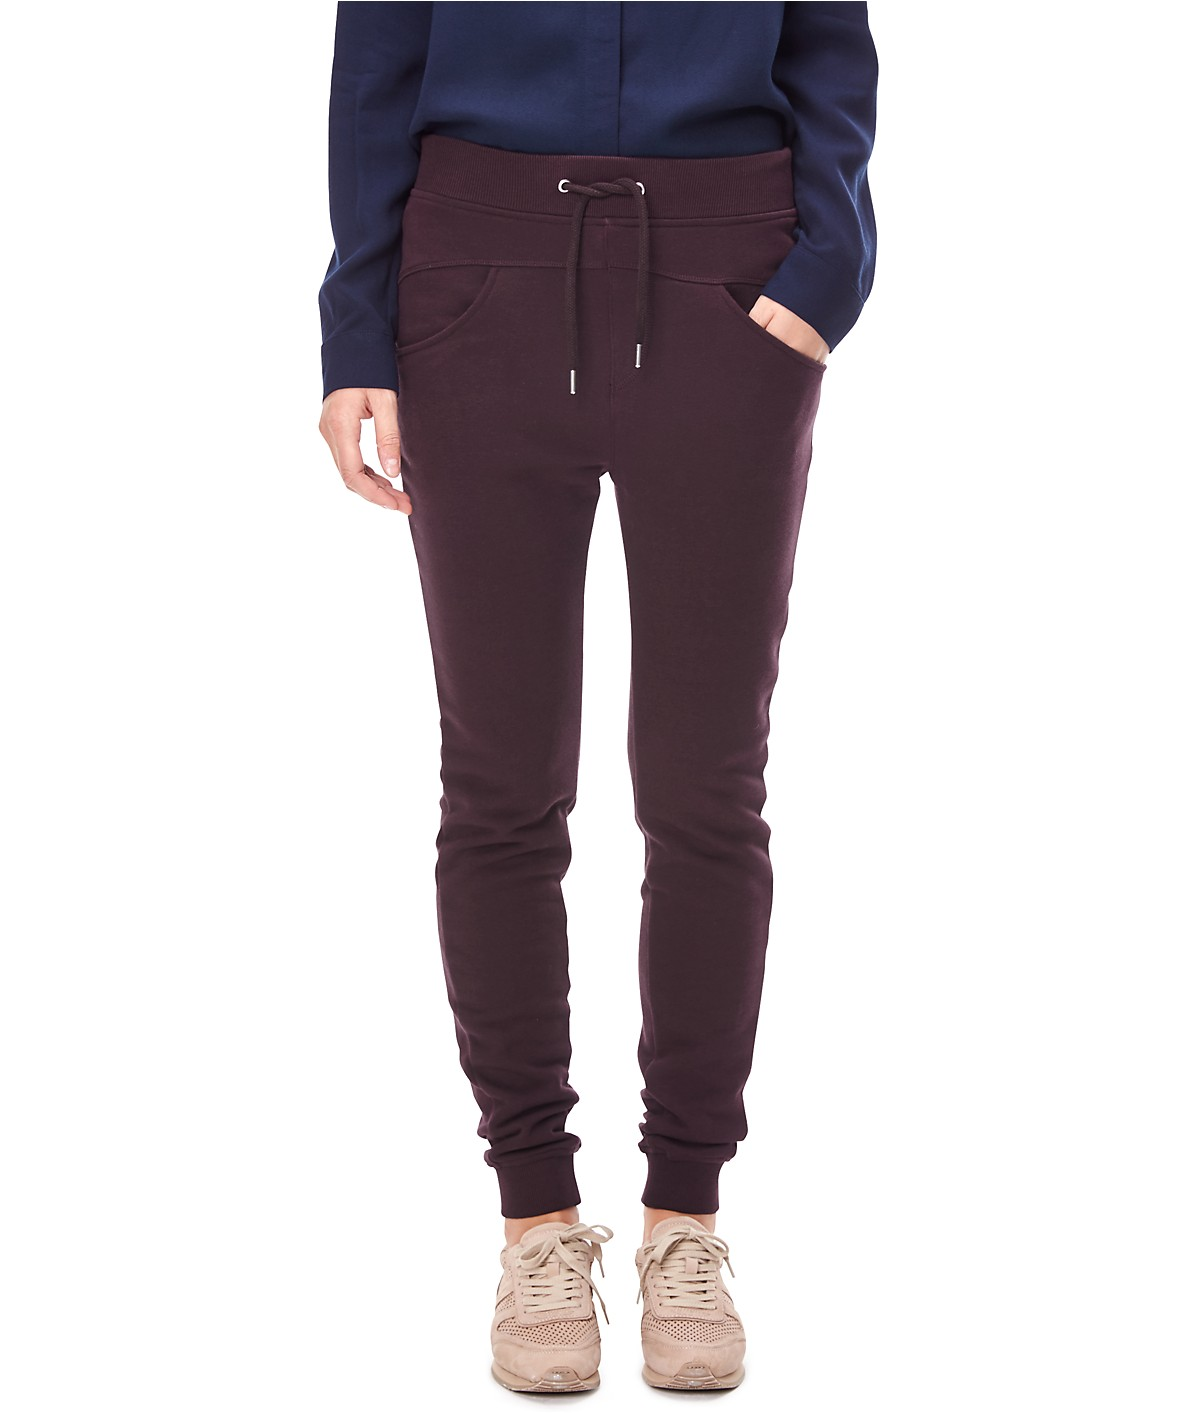 Trousers W2160030 from liebeskind